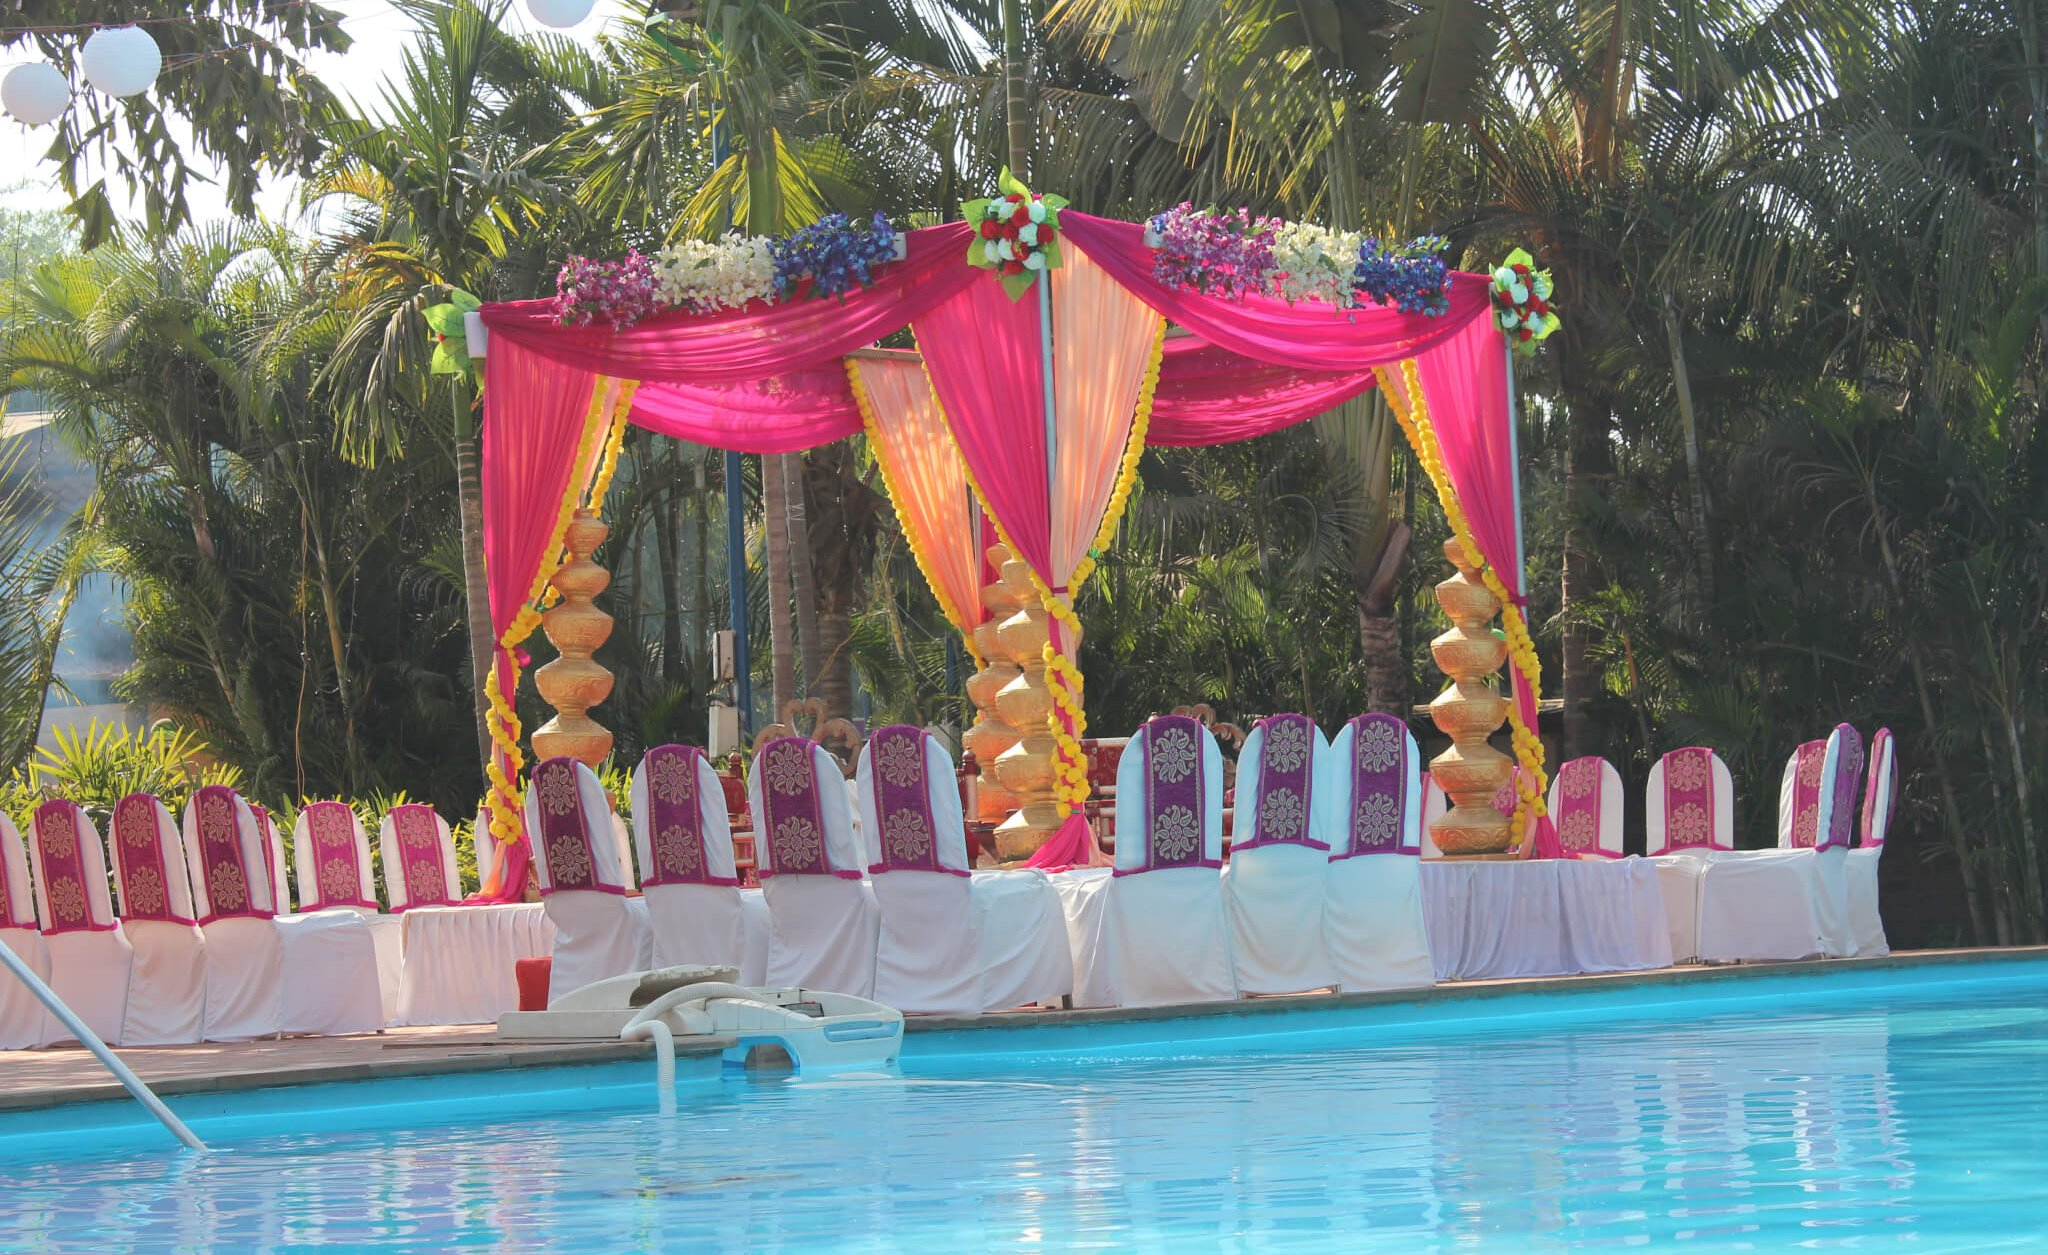 Vidhi mandap by the pool